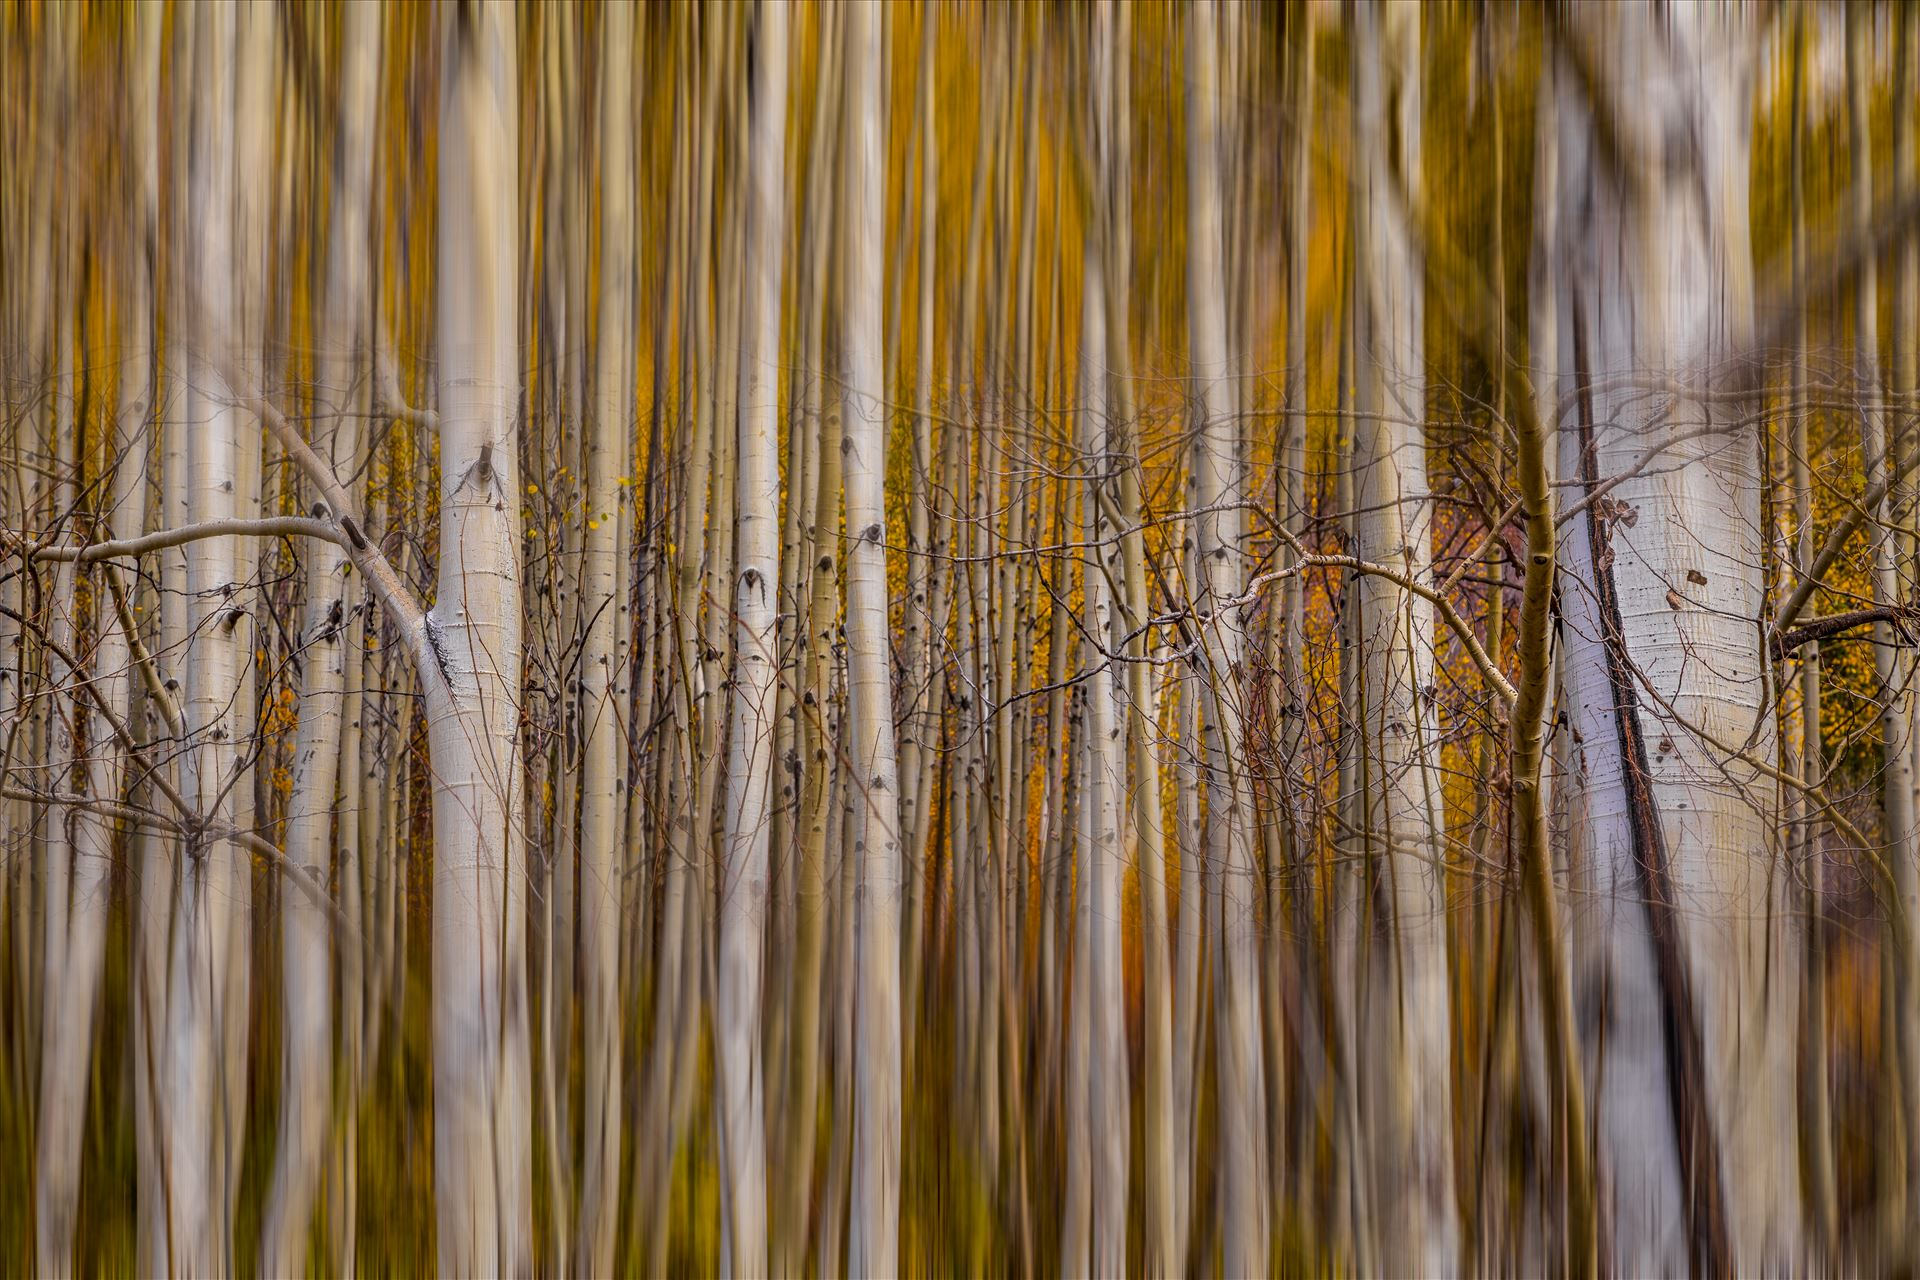 Aspen Alignment - Experimental edit of fall aspens. by D Scott Smith